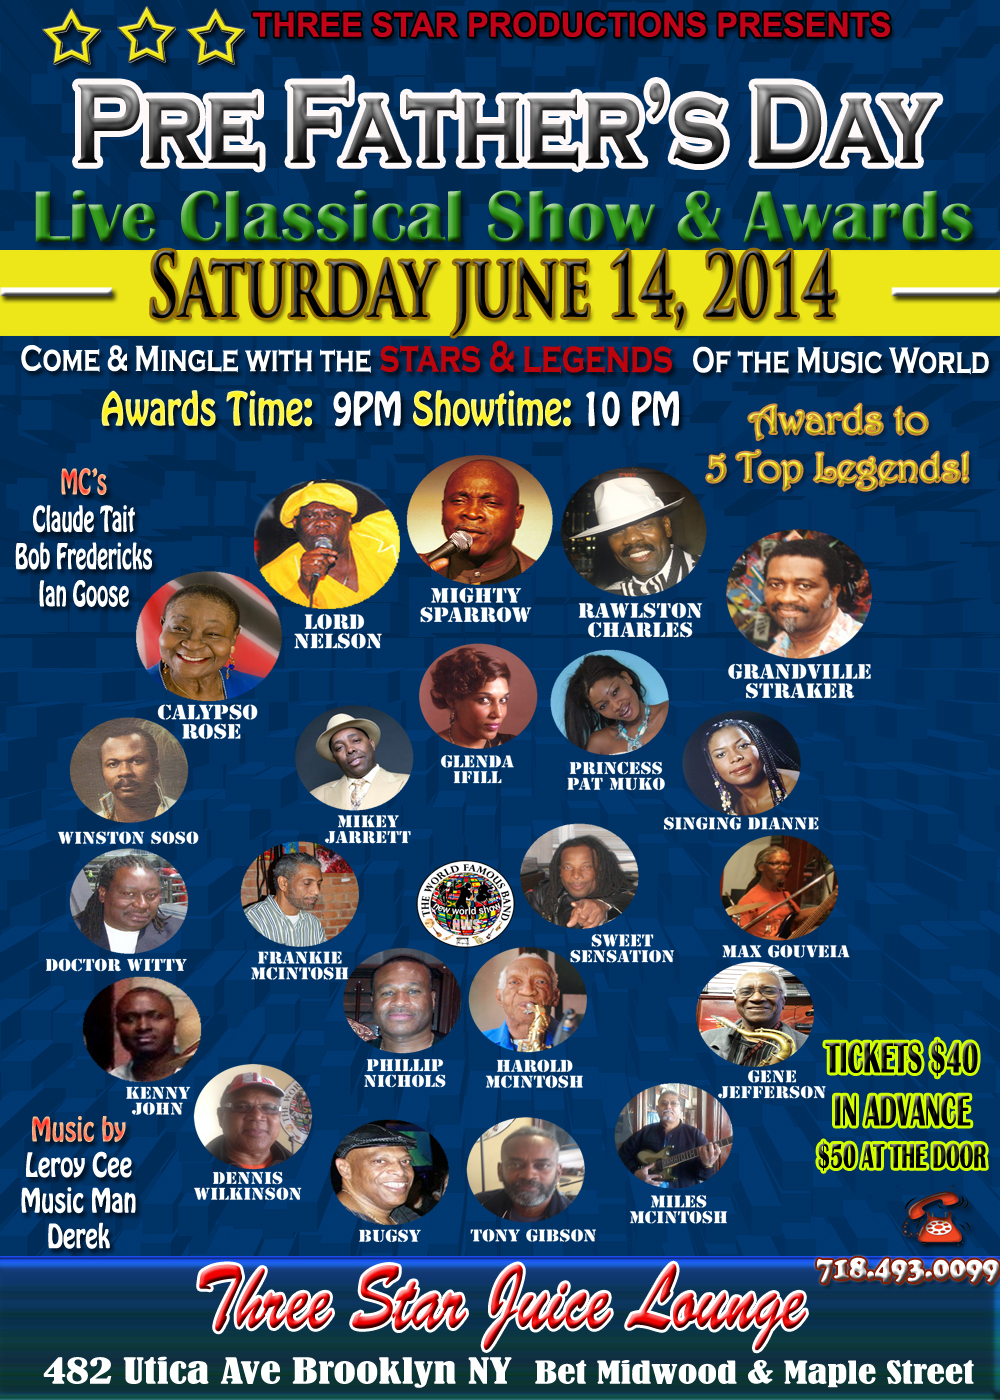 Pre-Fathers Day Live Classical Show & Awards